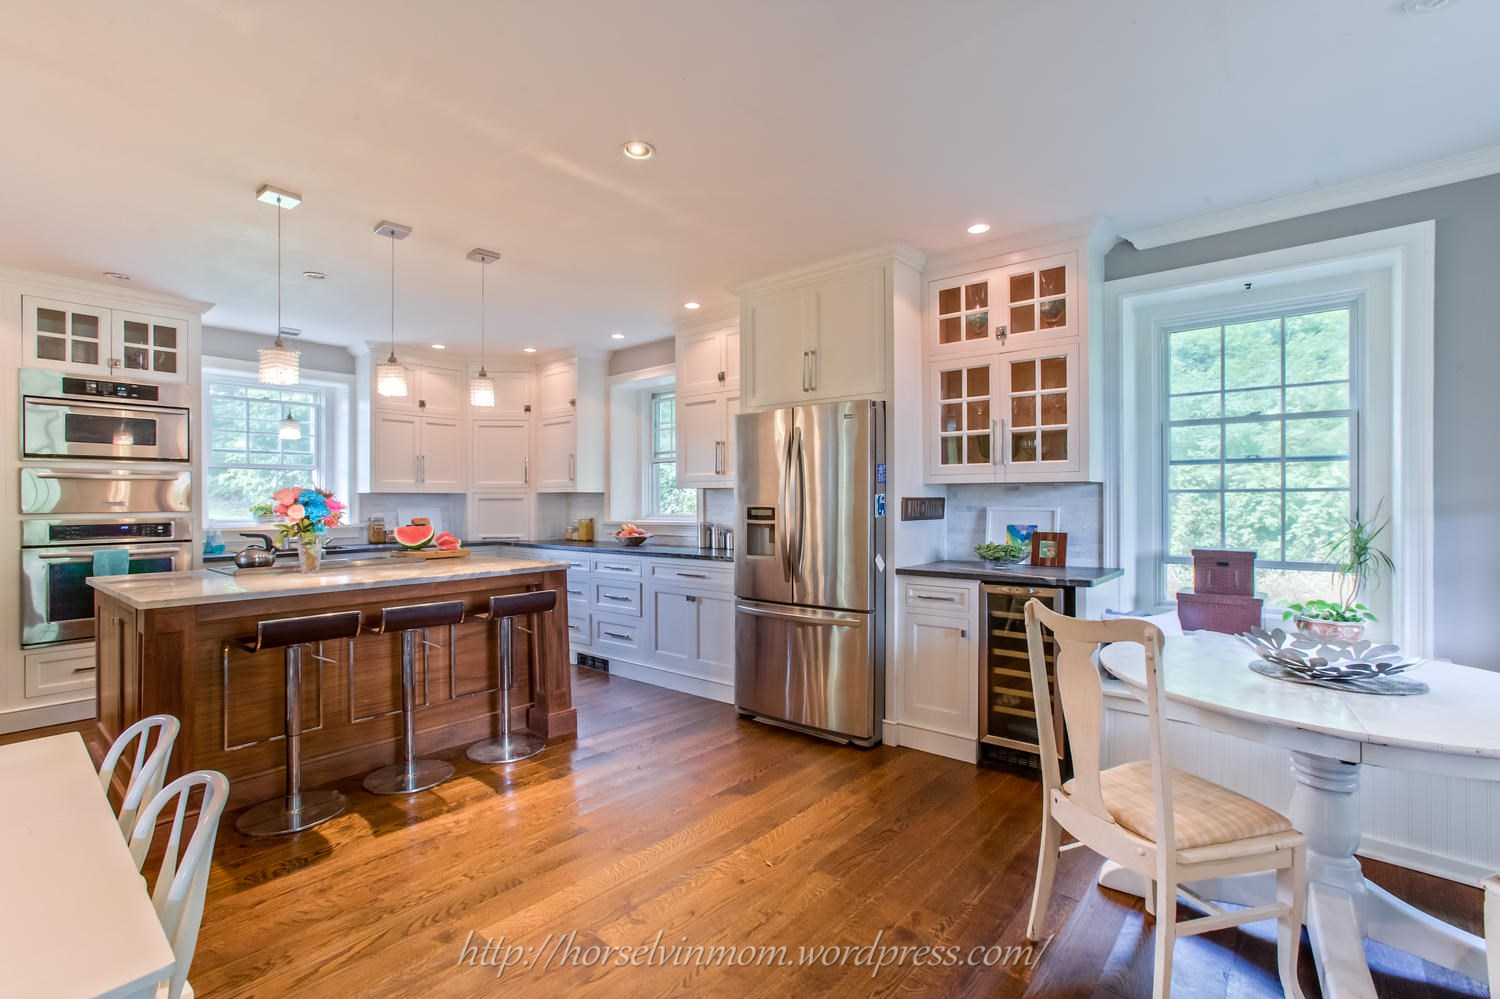 scratch dent kitchen appliances linoleum flooring remodelaholic   white country remodel with marble ...